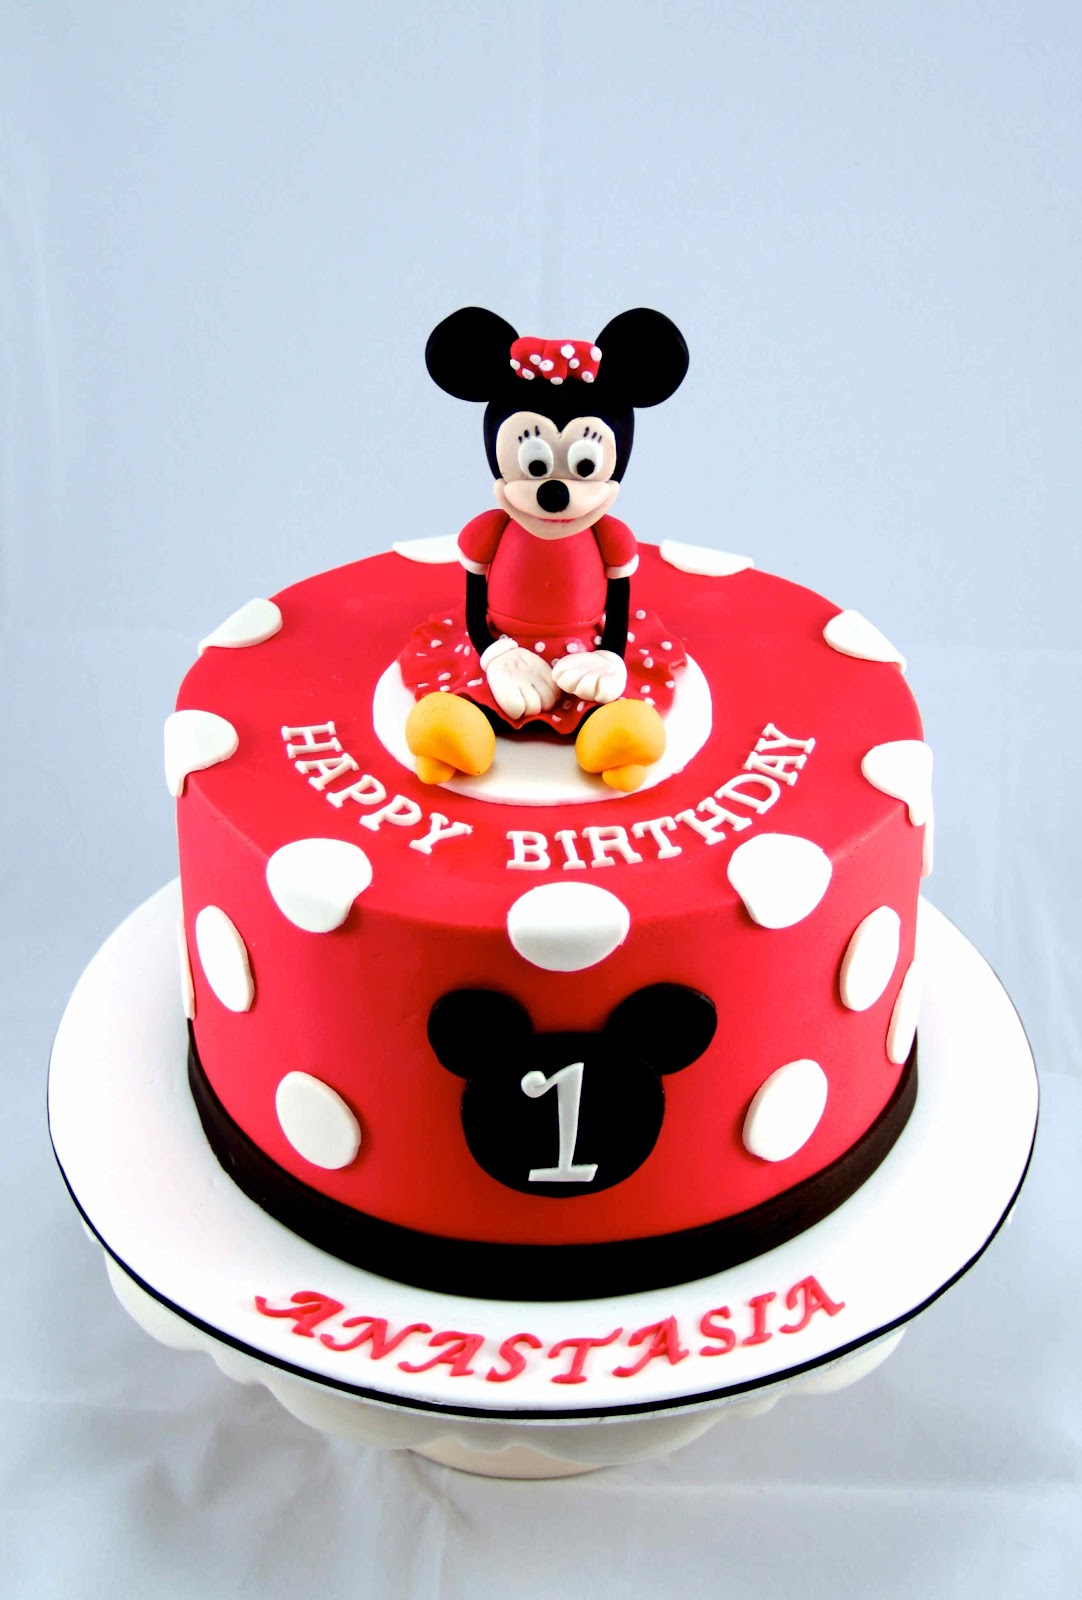 Minnie Mouse Template With Red Bow